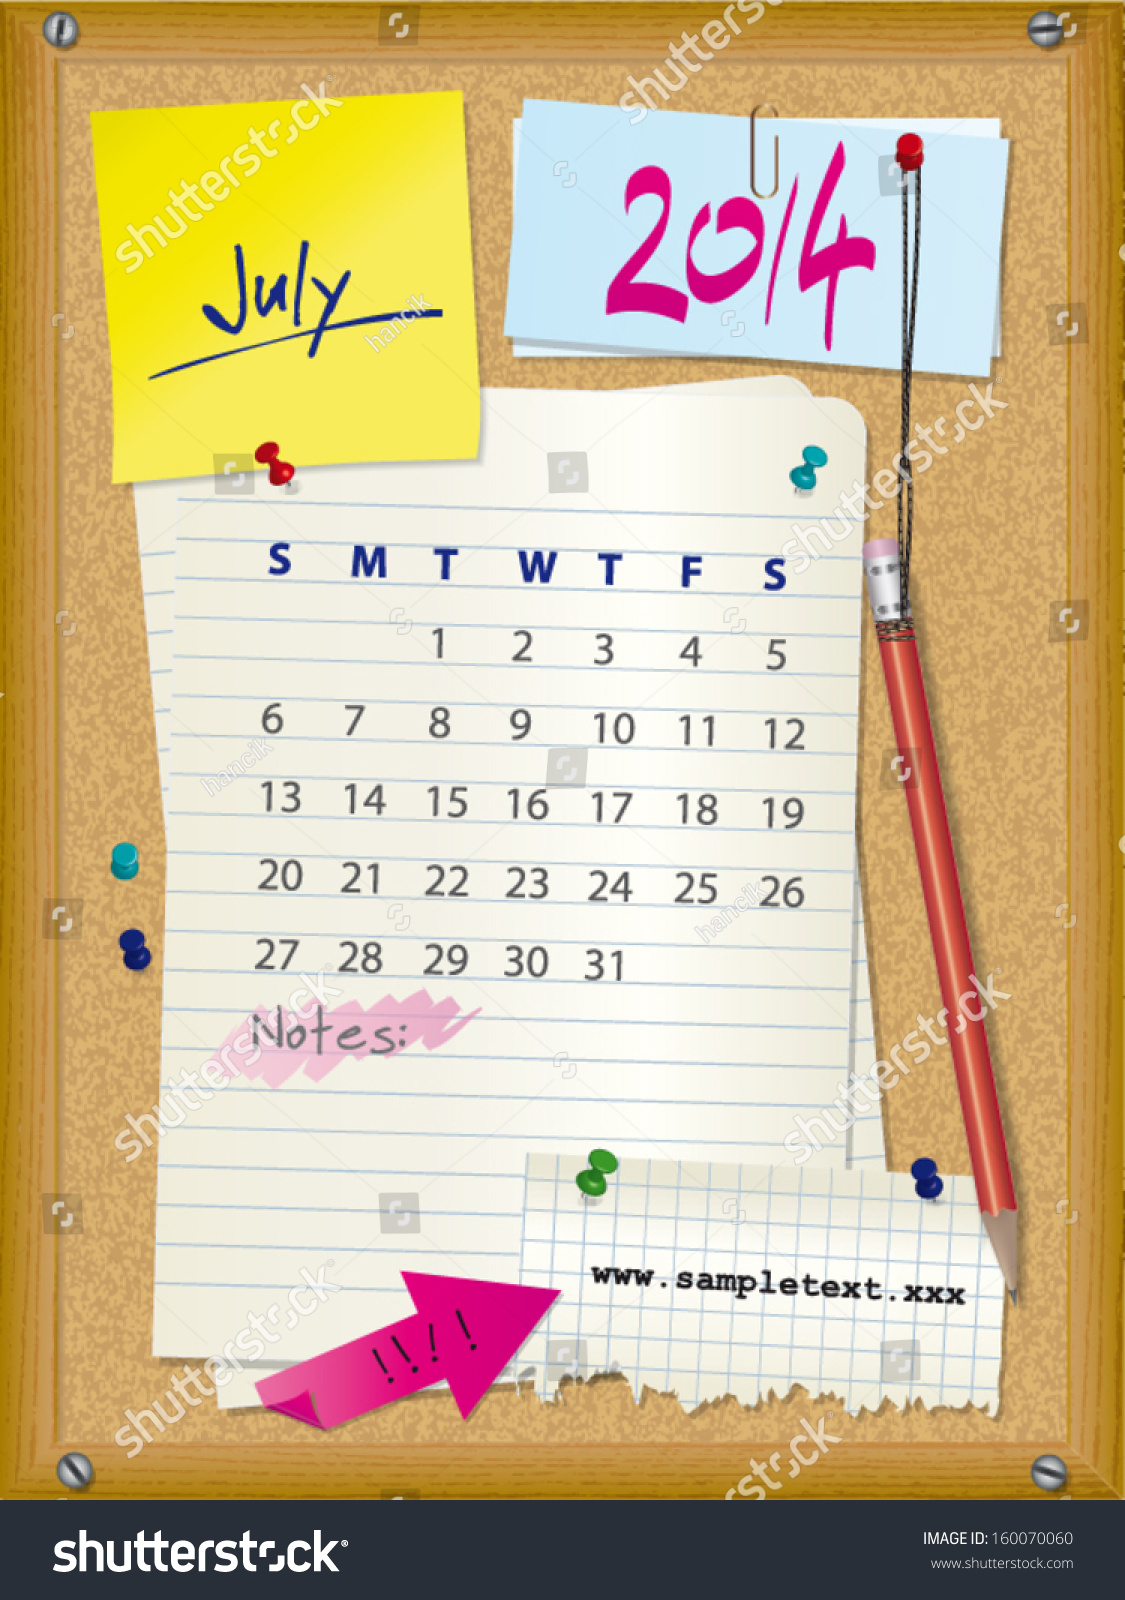 Calendar Illustration Board : Calendar month july cork board with notes